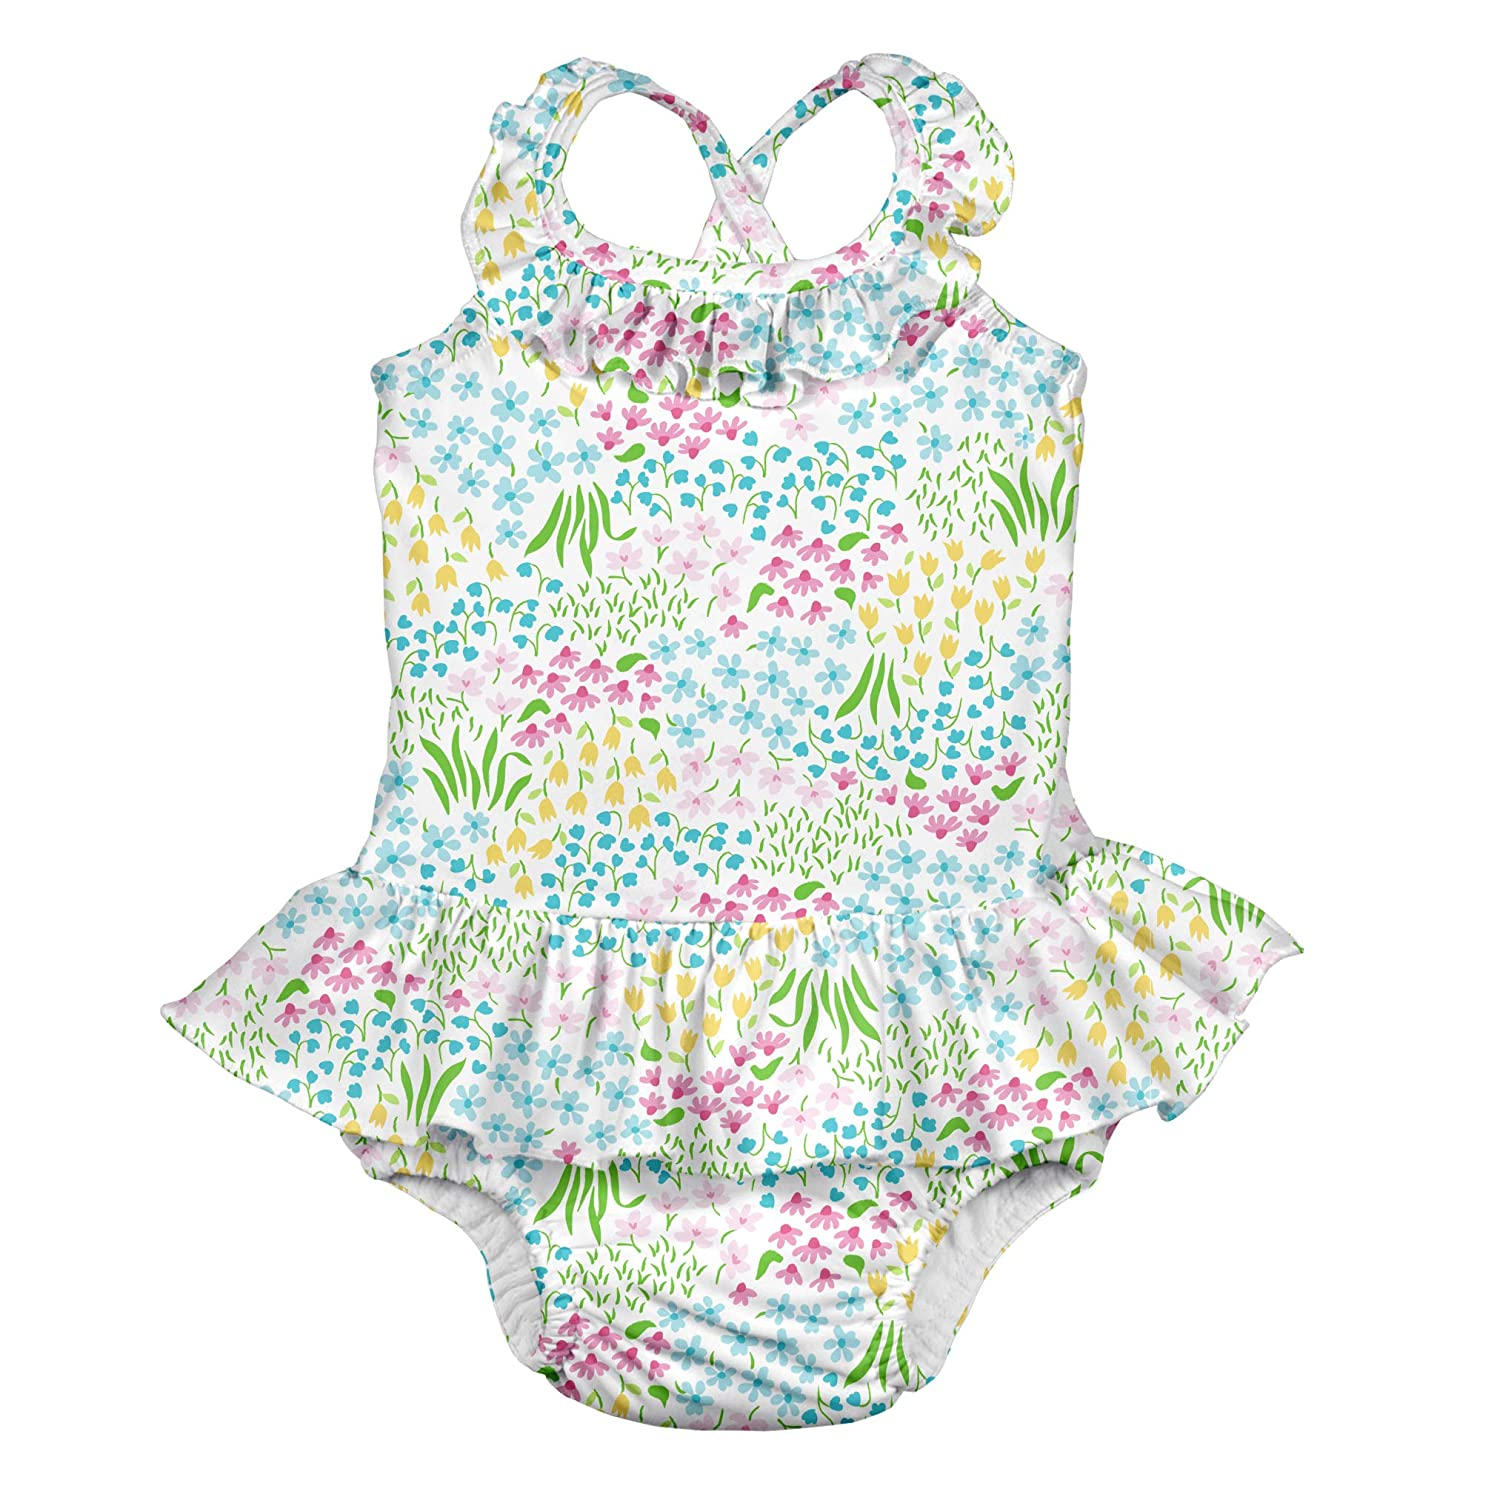 by green sprouts Girls 1pc Ruffle Swimsuit with Built-in Reusable Absorbent Swim Diaper One Piece Swimsuit i play